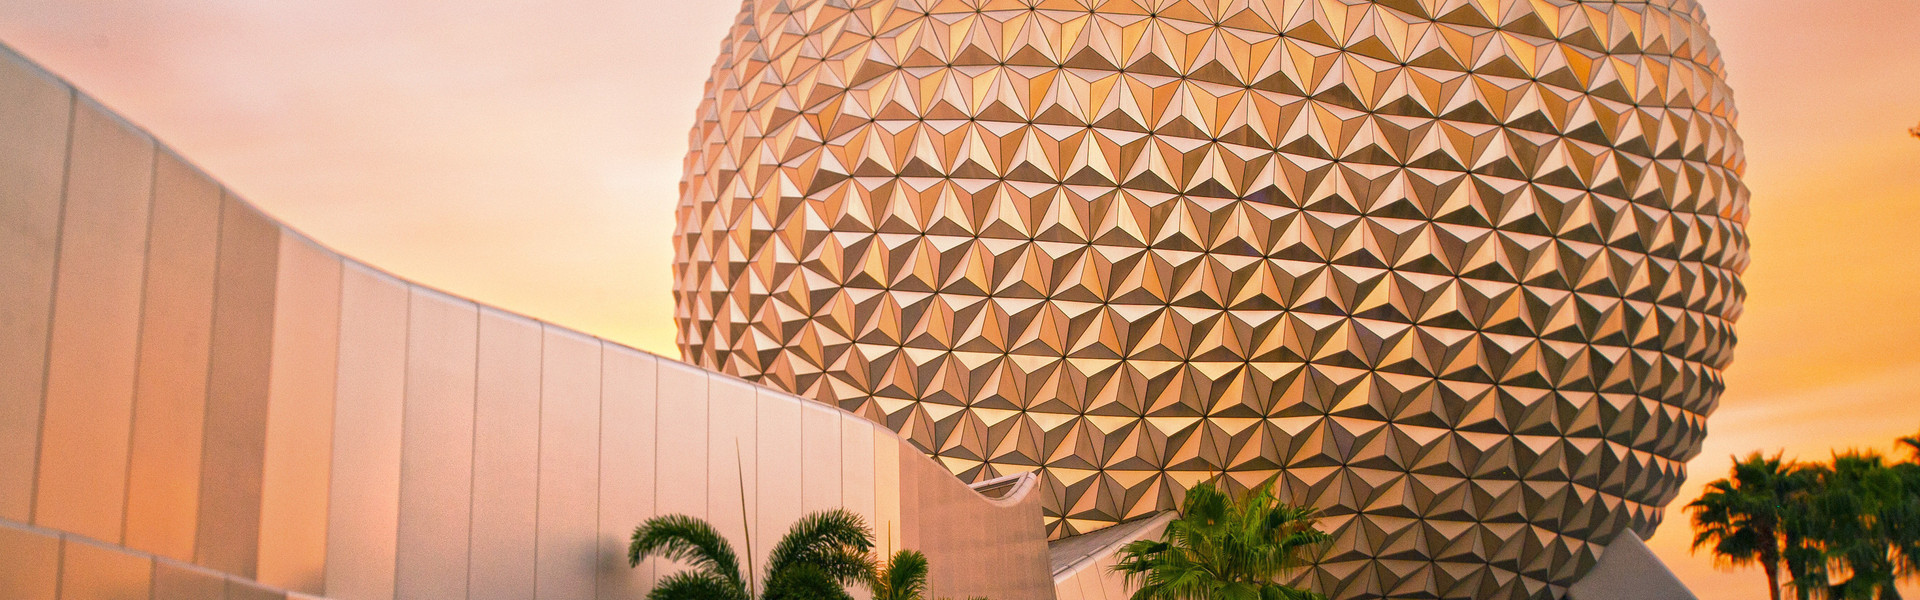 Hotel For Epcot International Festival of the Holidays